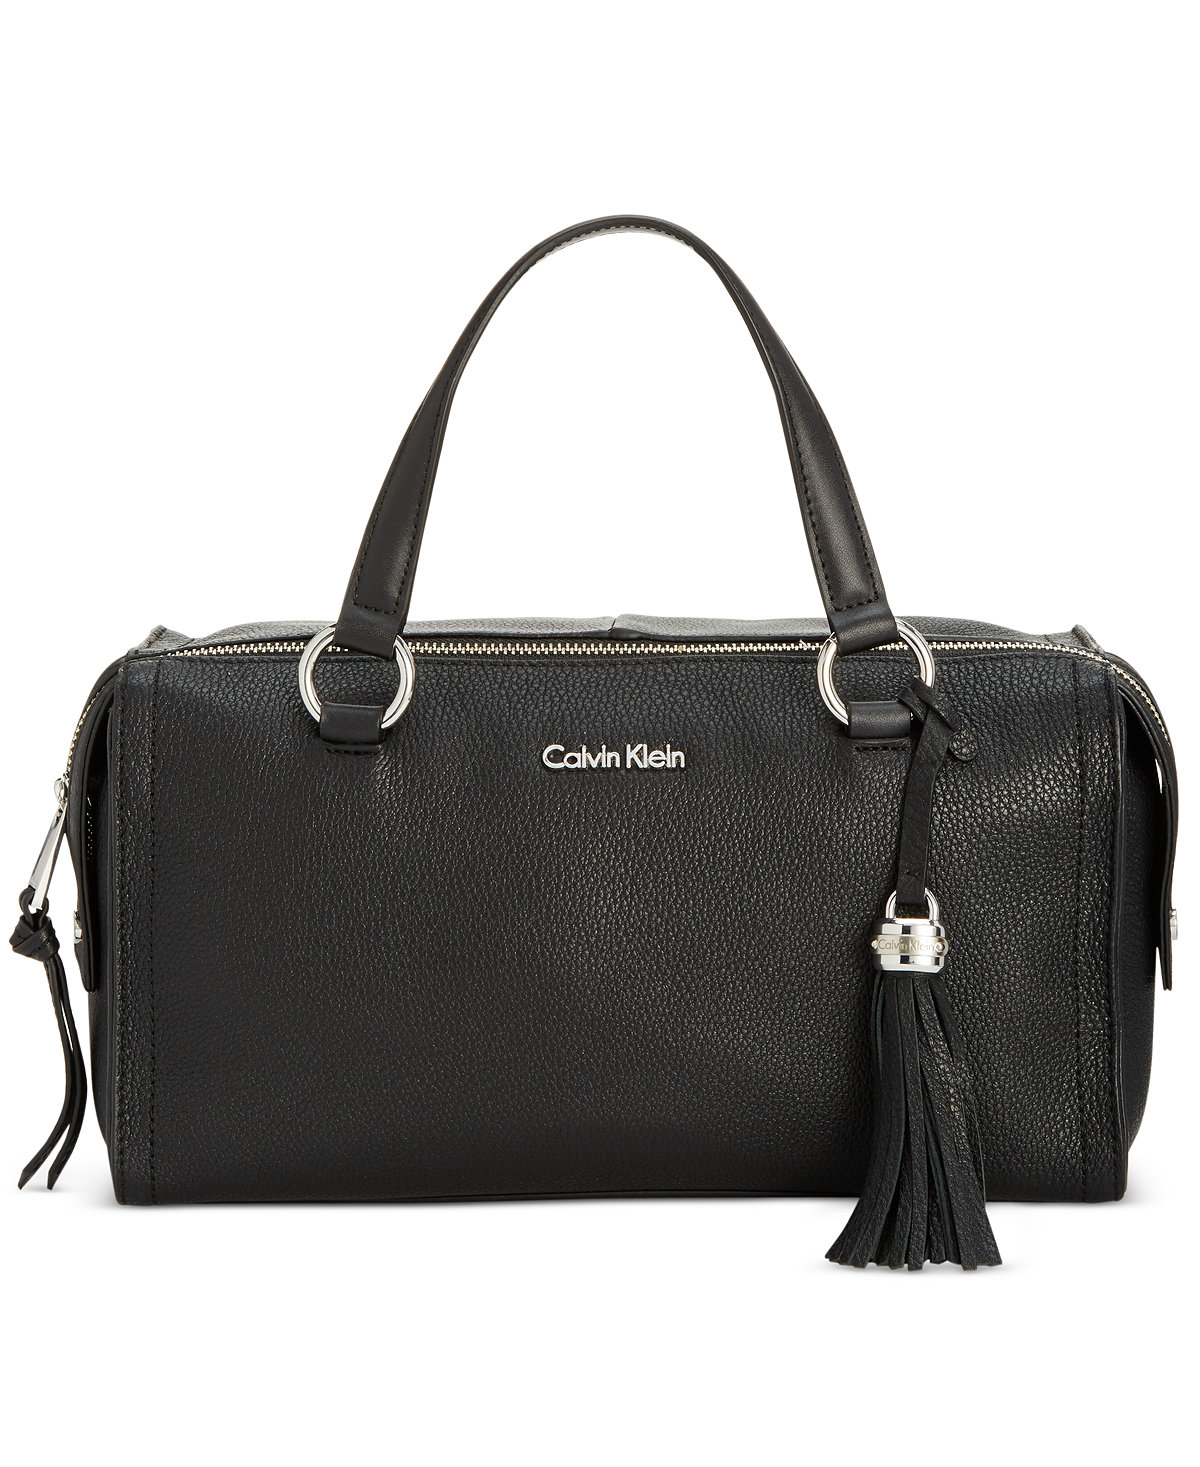 90d755dd3875 Calvin Klein Pebble Duffel at Macy s (now reduced to  102.60)